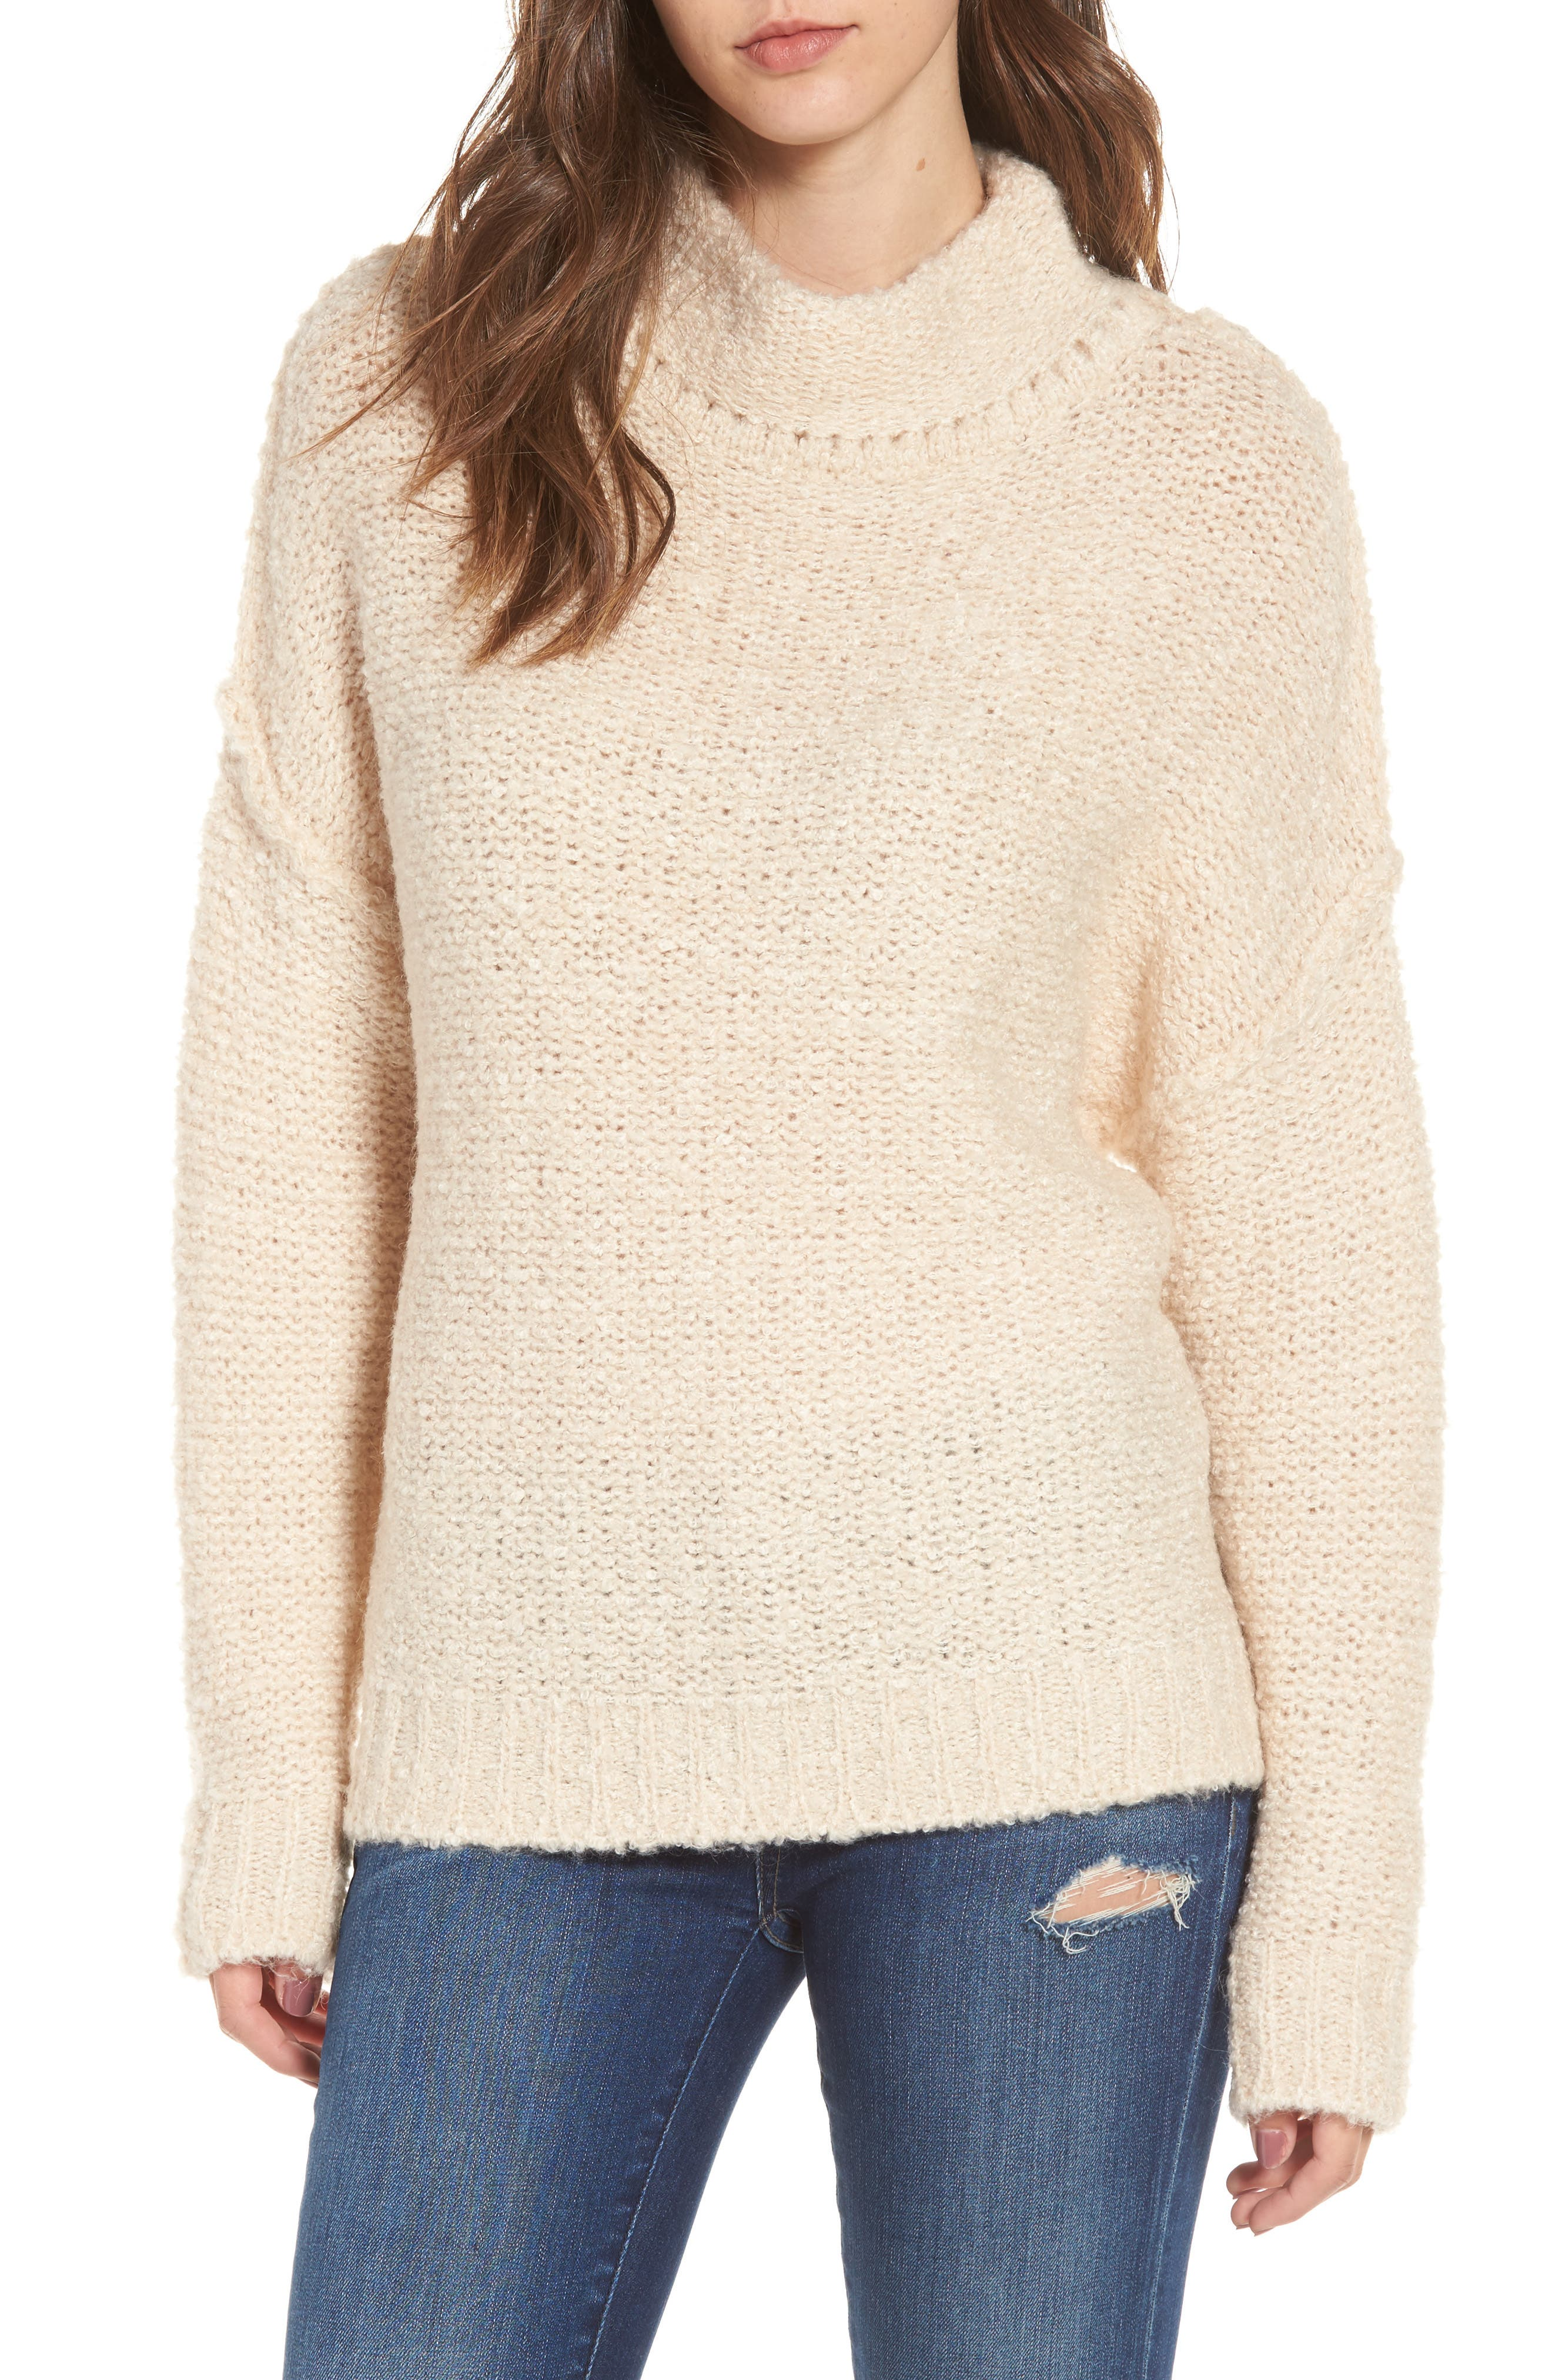 Main Image - ASTR the Label Darleen Sweater